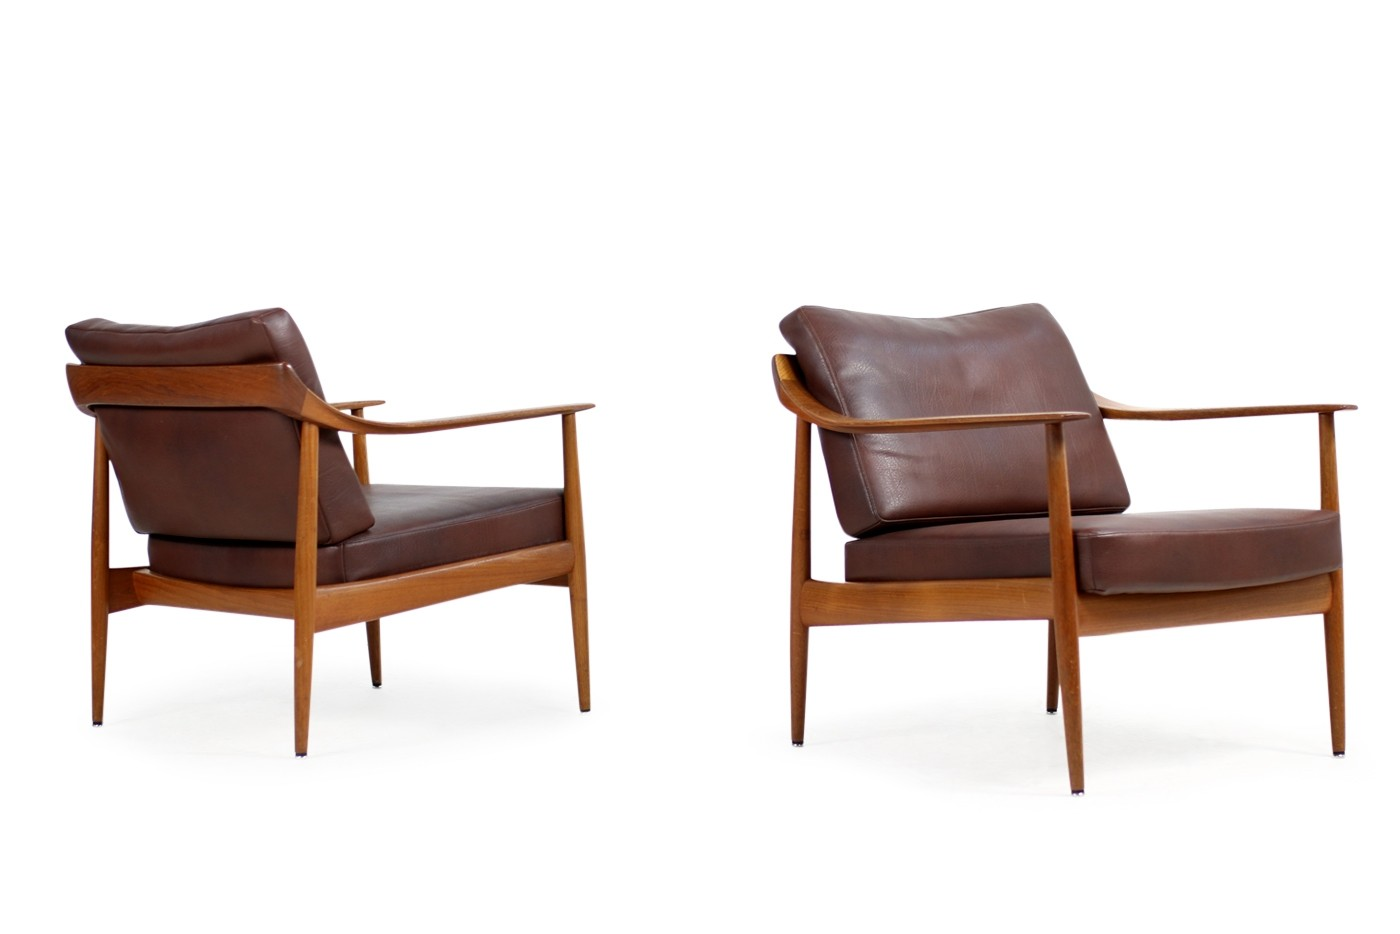 Knoll Antimott Sessel Pair Of 1960s Teak And Leather Easy Chairs Knoll Antimott